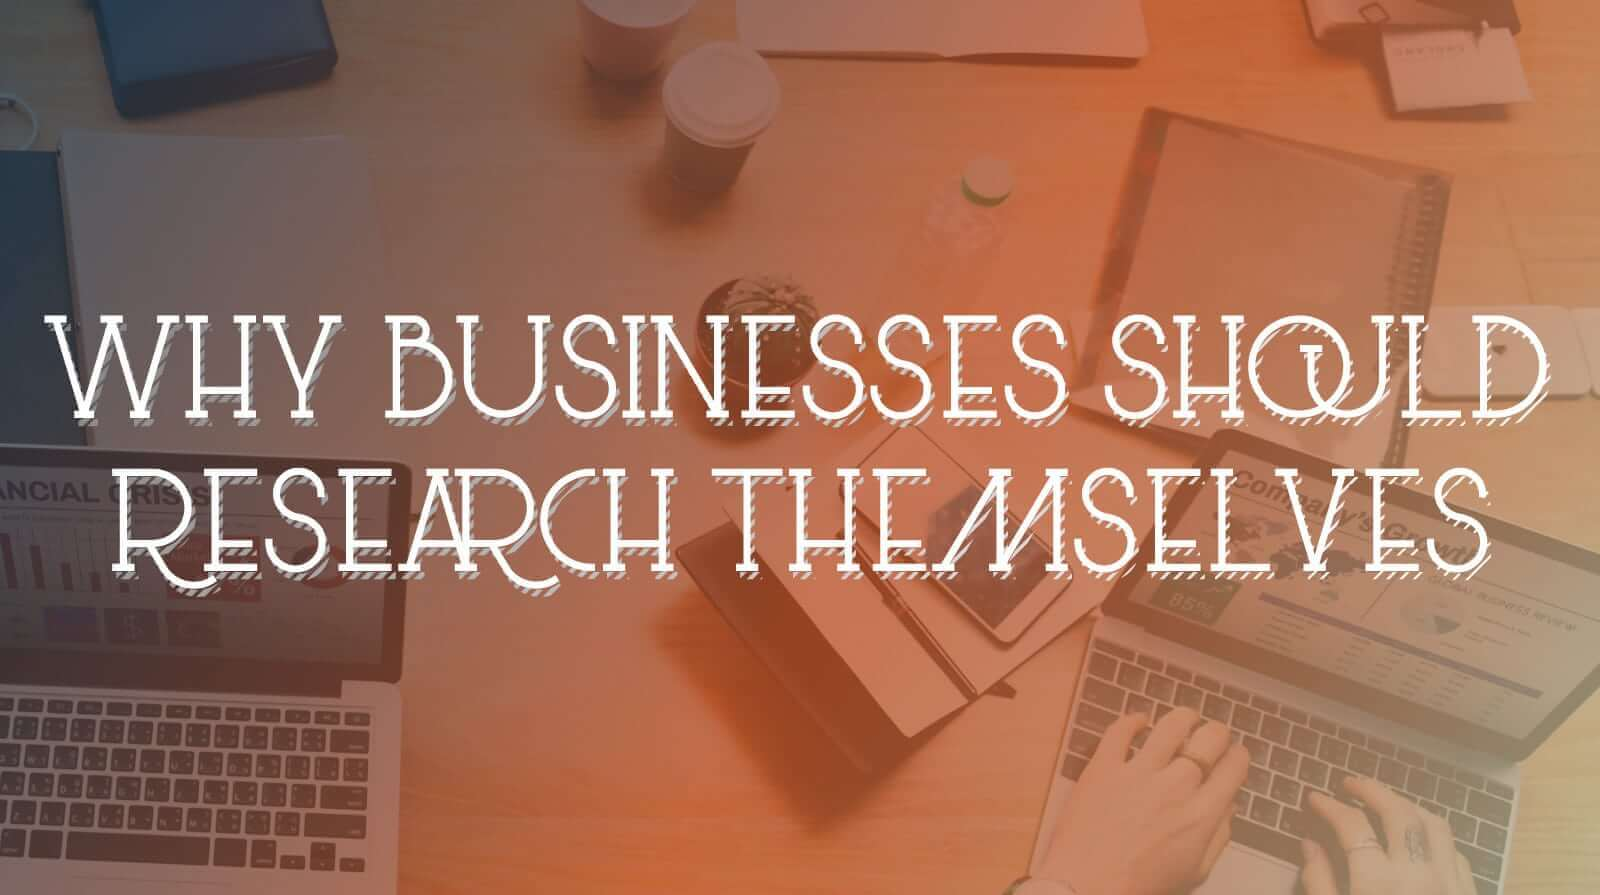 Why Businesses Should Research Themselves